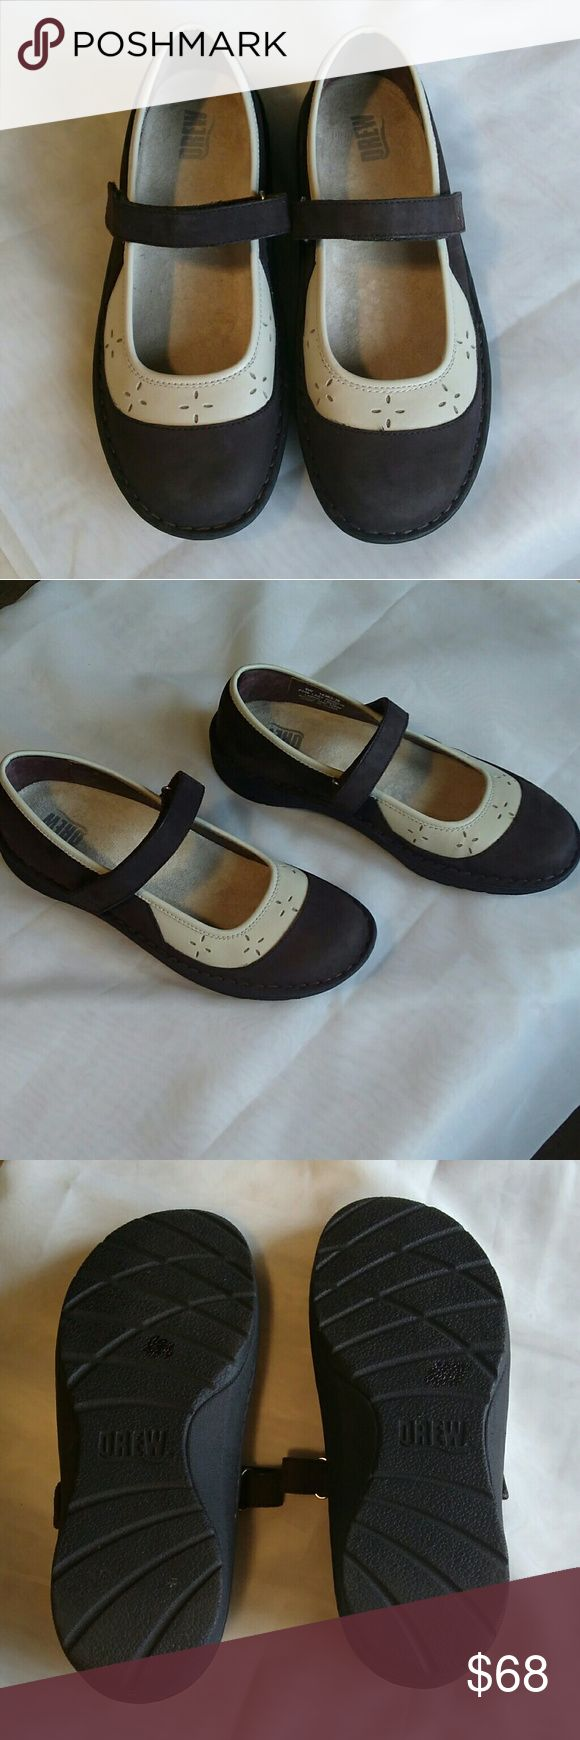 Womens Drew shoes.  NWOT! Women's pretty Mary Jane style orthopedic shoe.  Brown and cream colored with Velcro strap.  These are a size 9 wide.  Leather upper.  Never worn. Drew Shoes Wedges